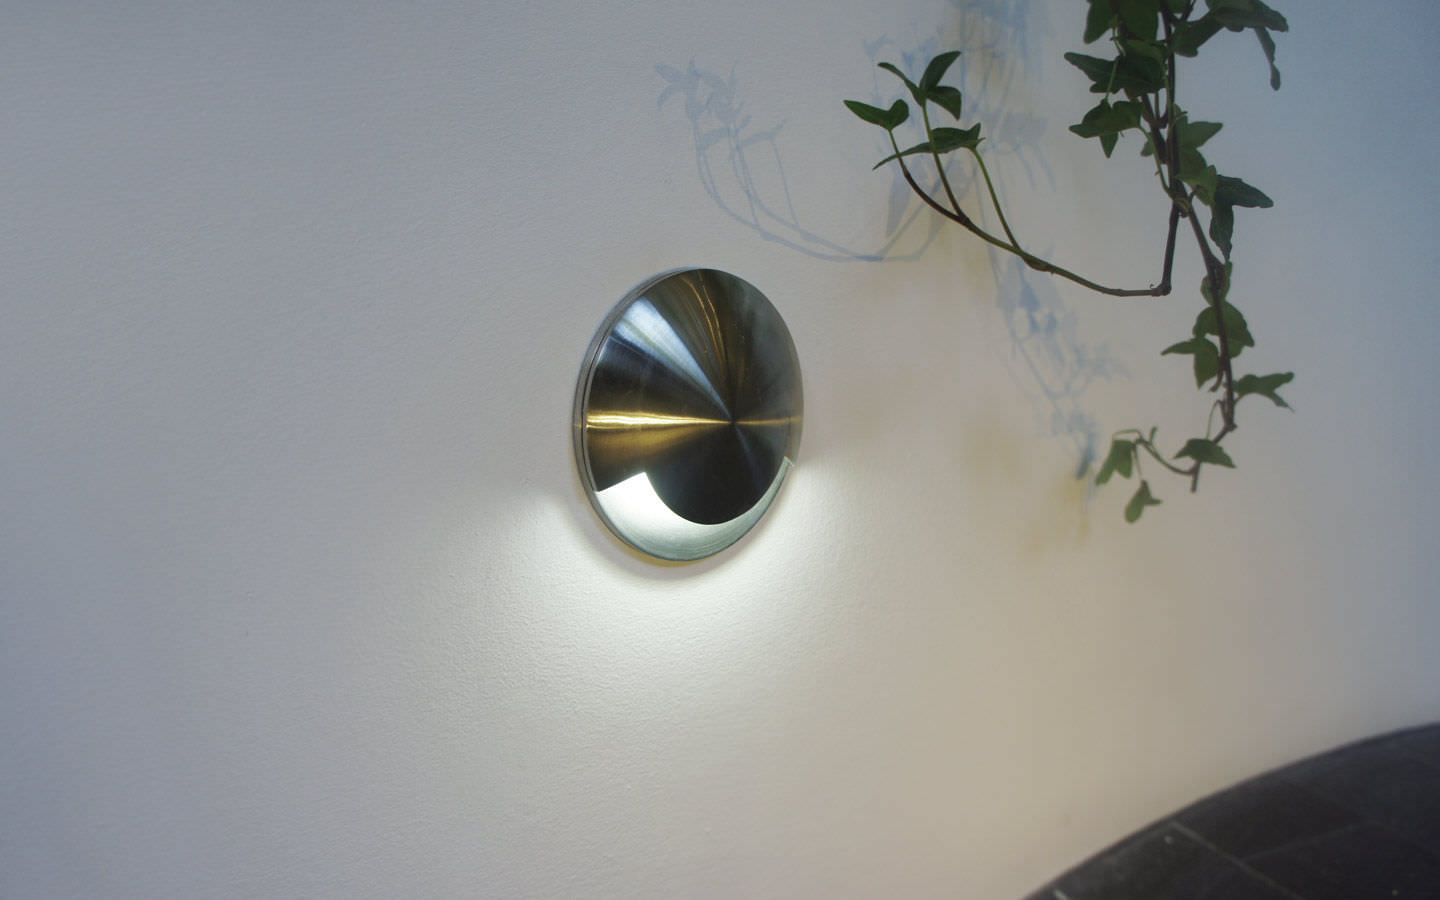 Recessed wall light fixture led round outdoor marine grade recessed wall light fixture led round outdoor mozeypictures Choice Image